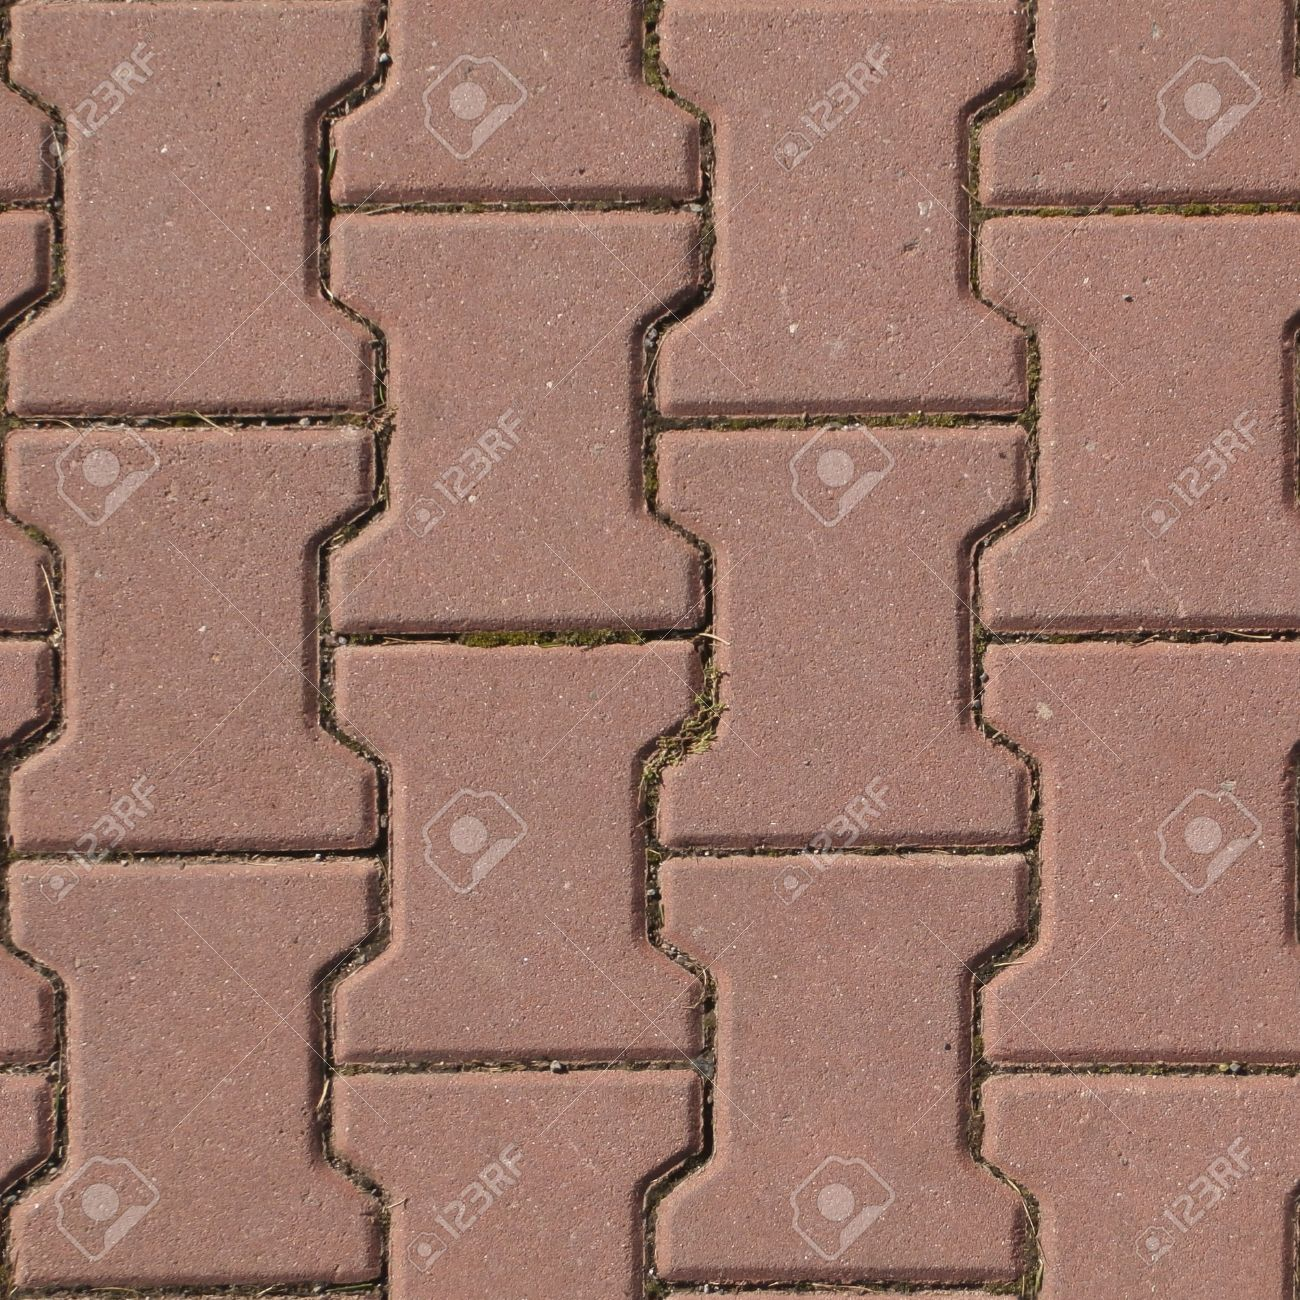 . Seamless red cobblestone pavement texture or background